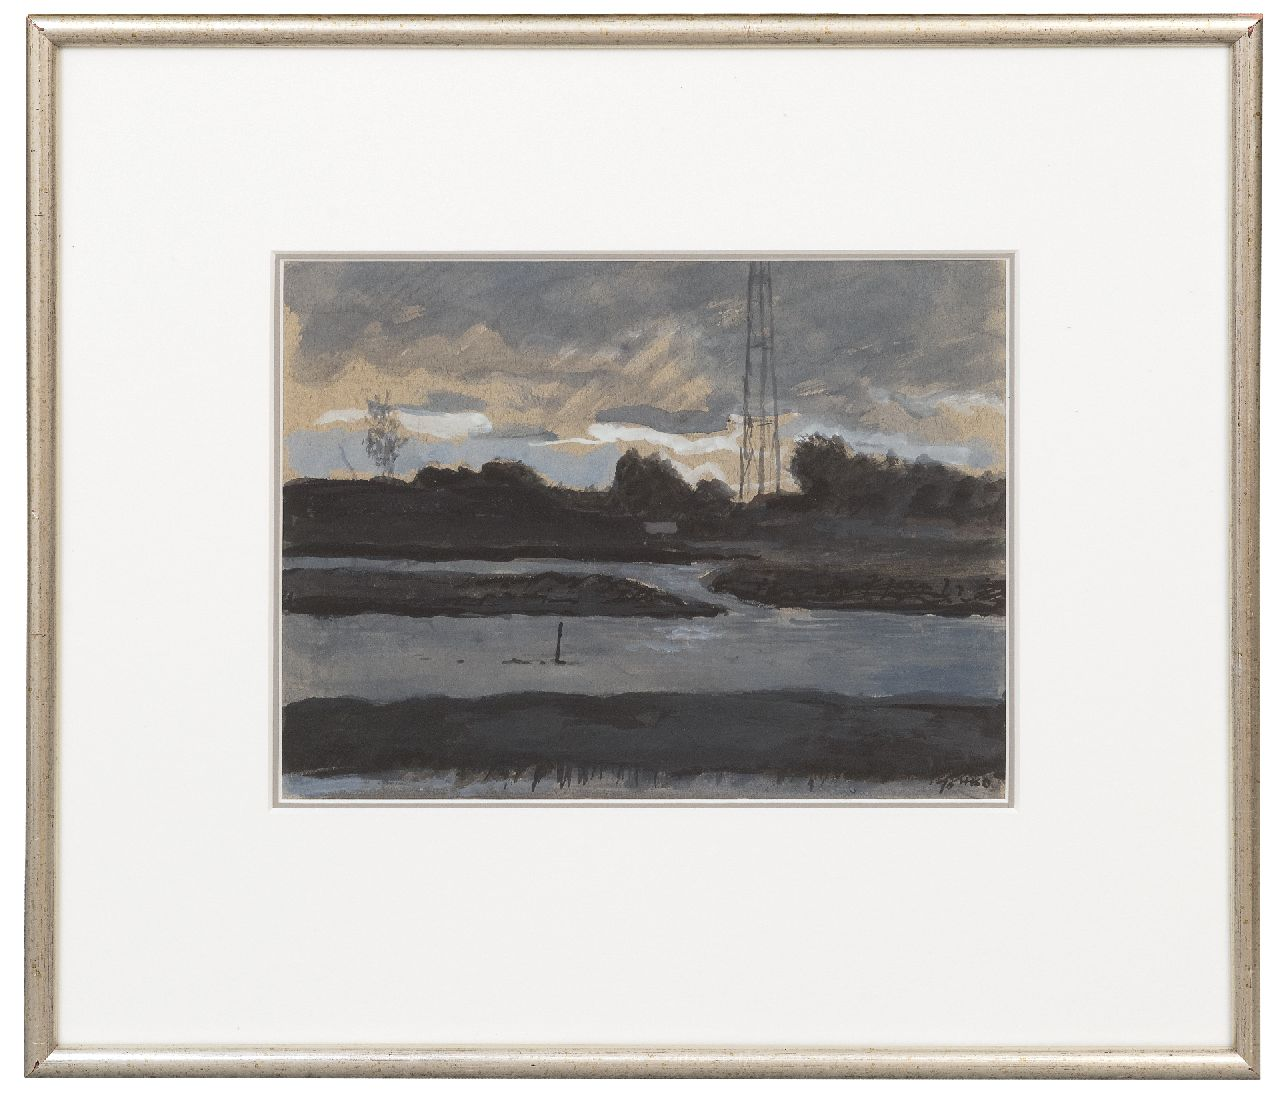 Kamerlingh Onnes H.H.  | 'Harm' Henrick Kamerlingh Onnes | Watercolours and drawings offered for sale | A river landscape, gouache on paper 22.0 x 29.0 cm, signed l.r. with monogram and dated '70